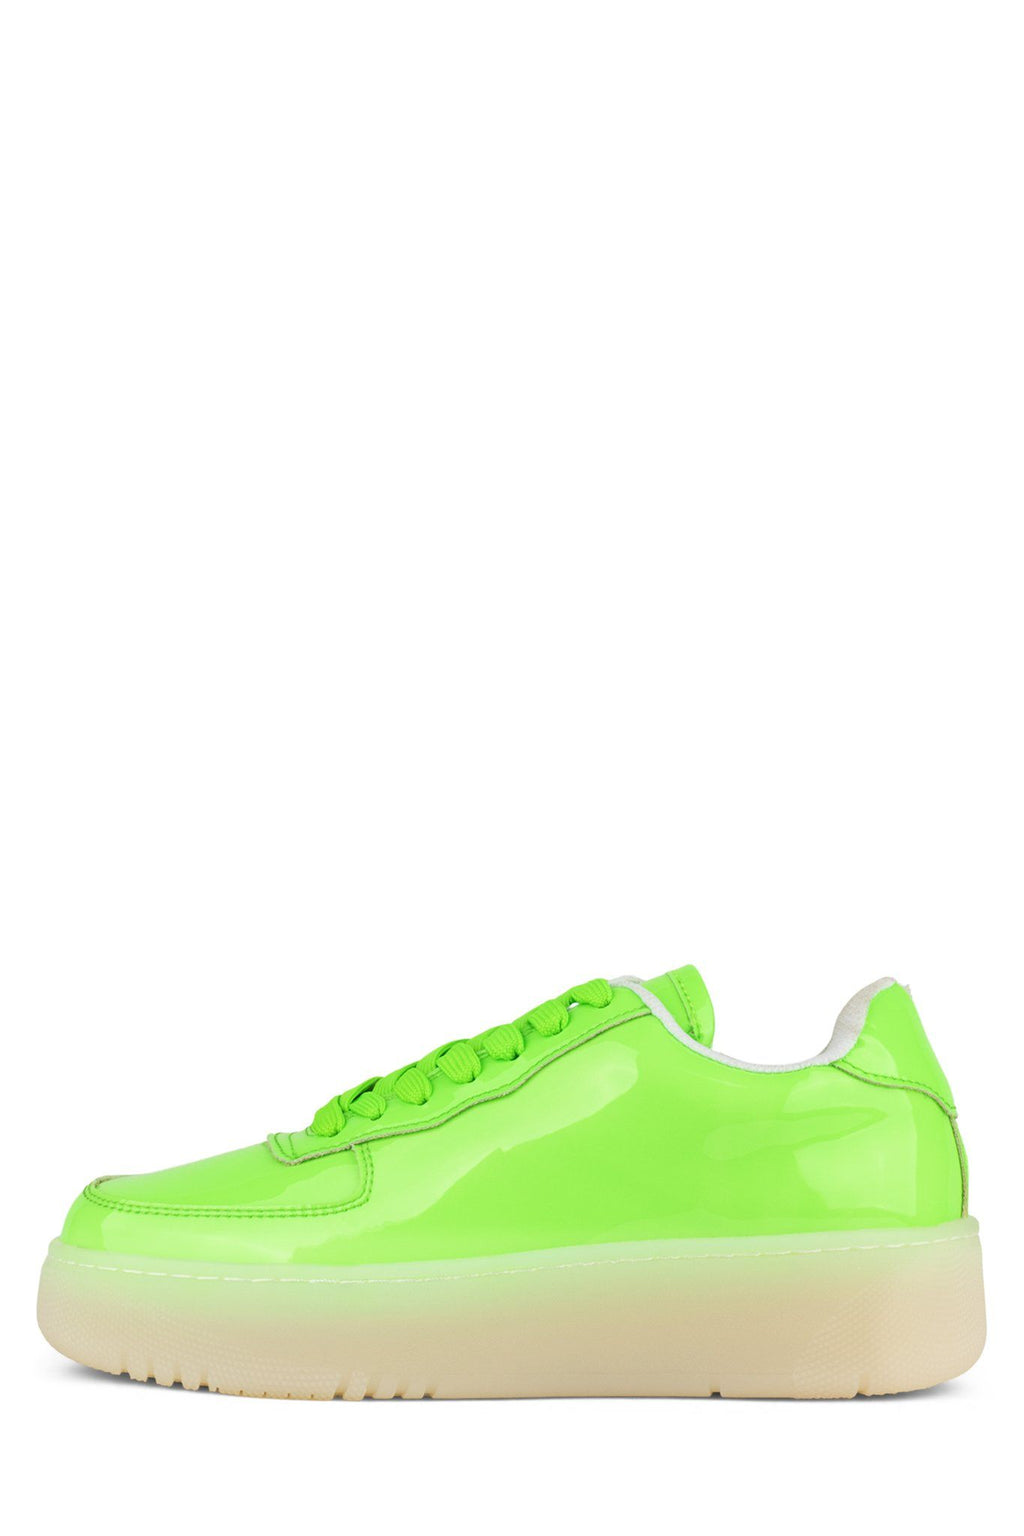 COURT Sneaker Jeffrey Campbell Dusty Neon Green Pat Clr 6